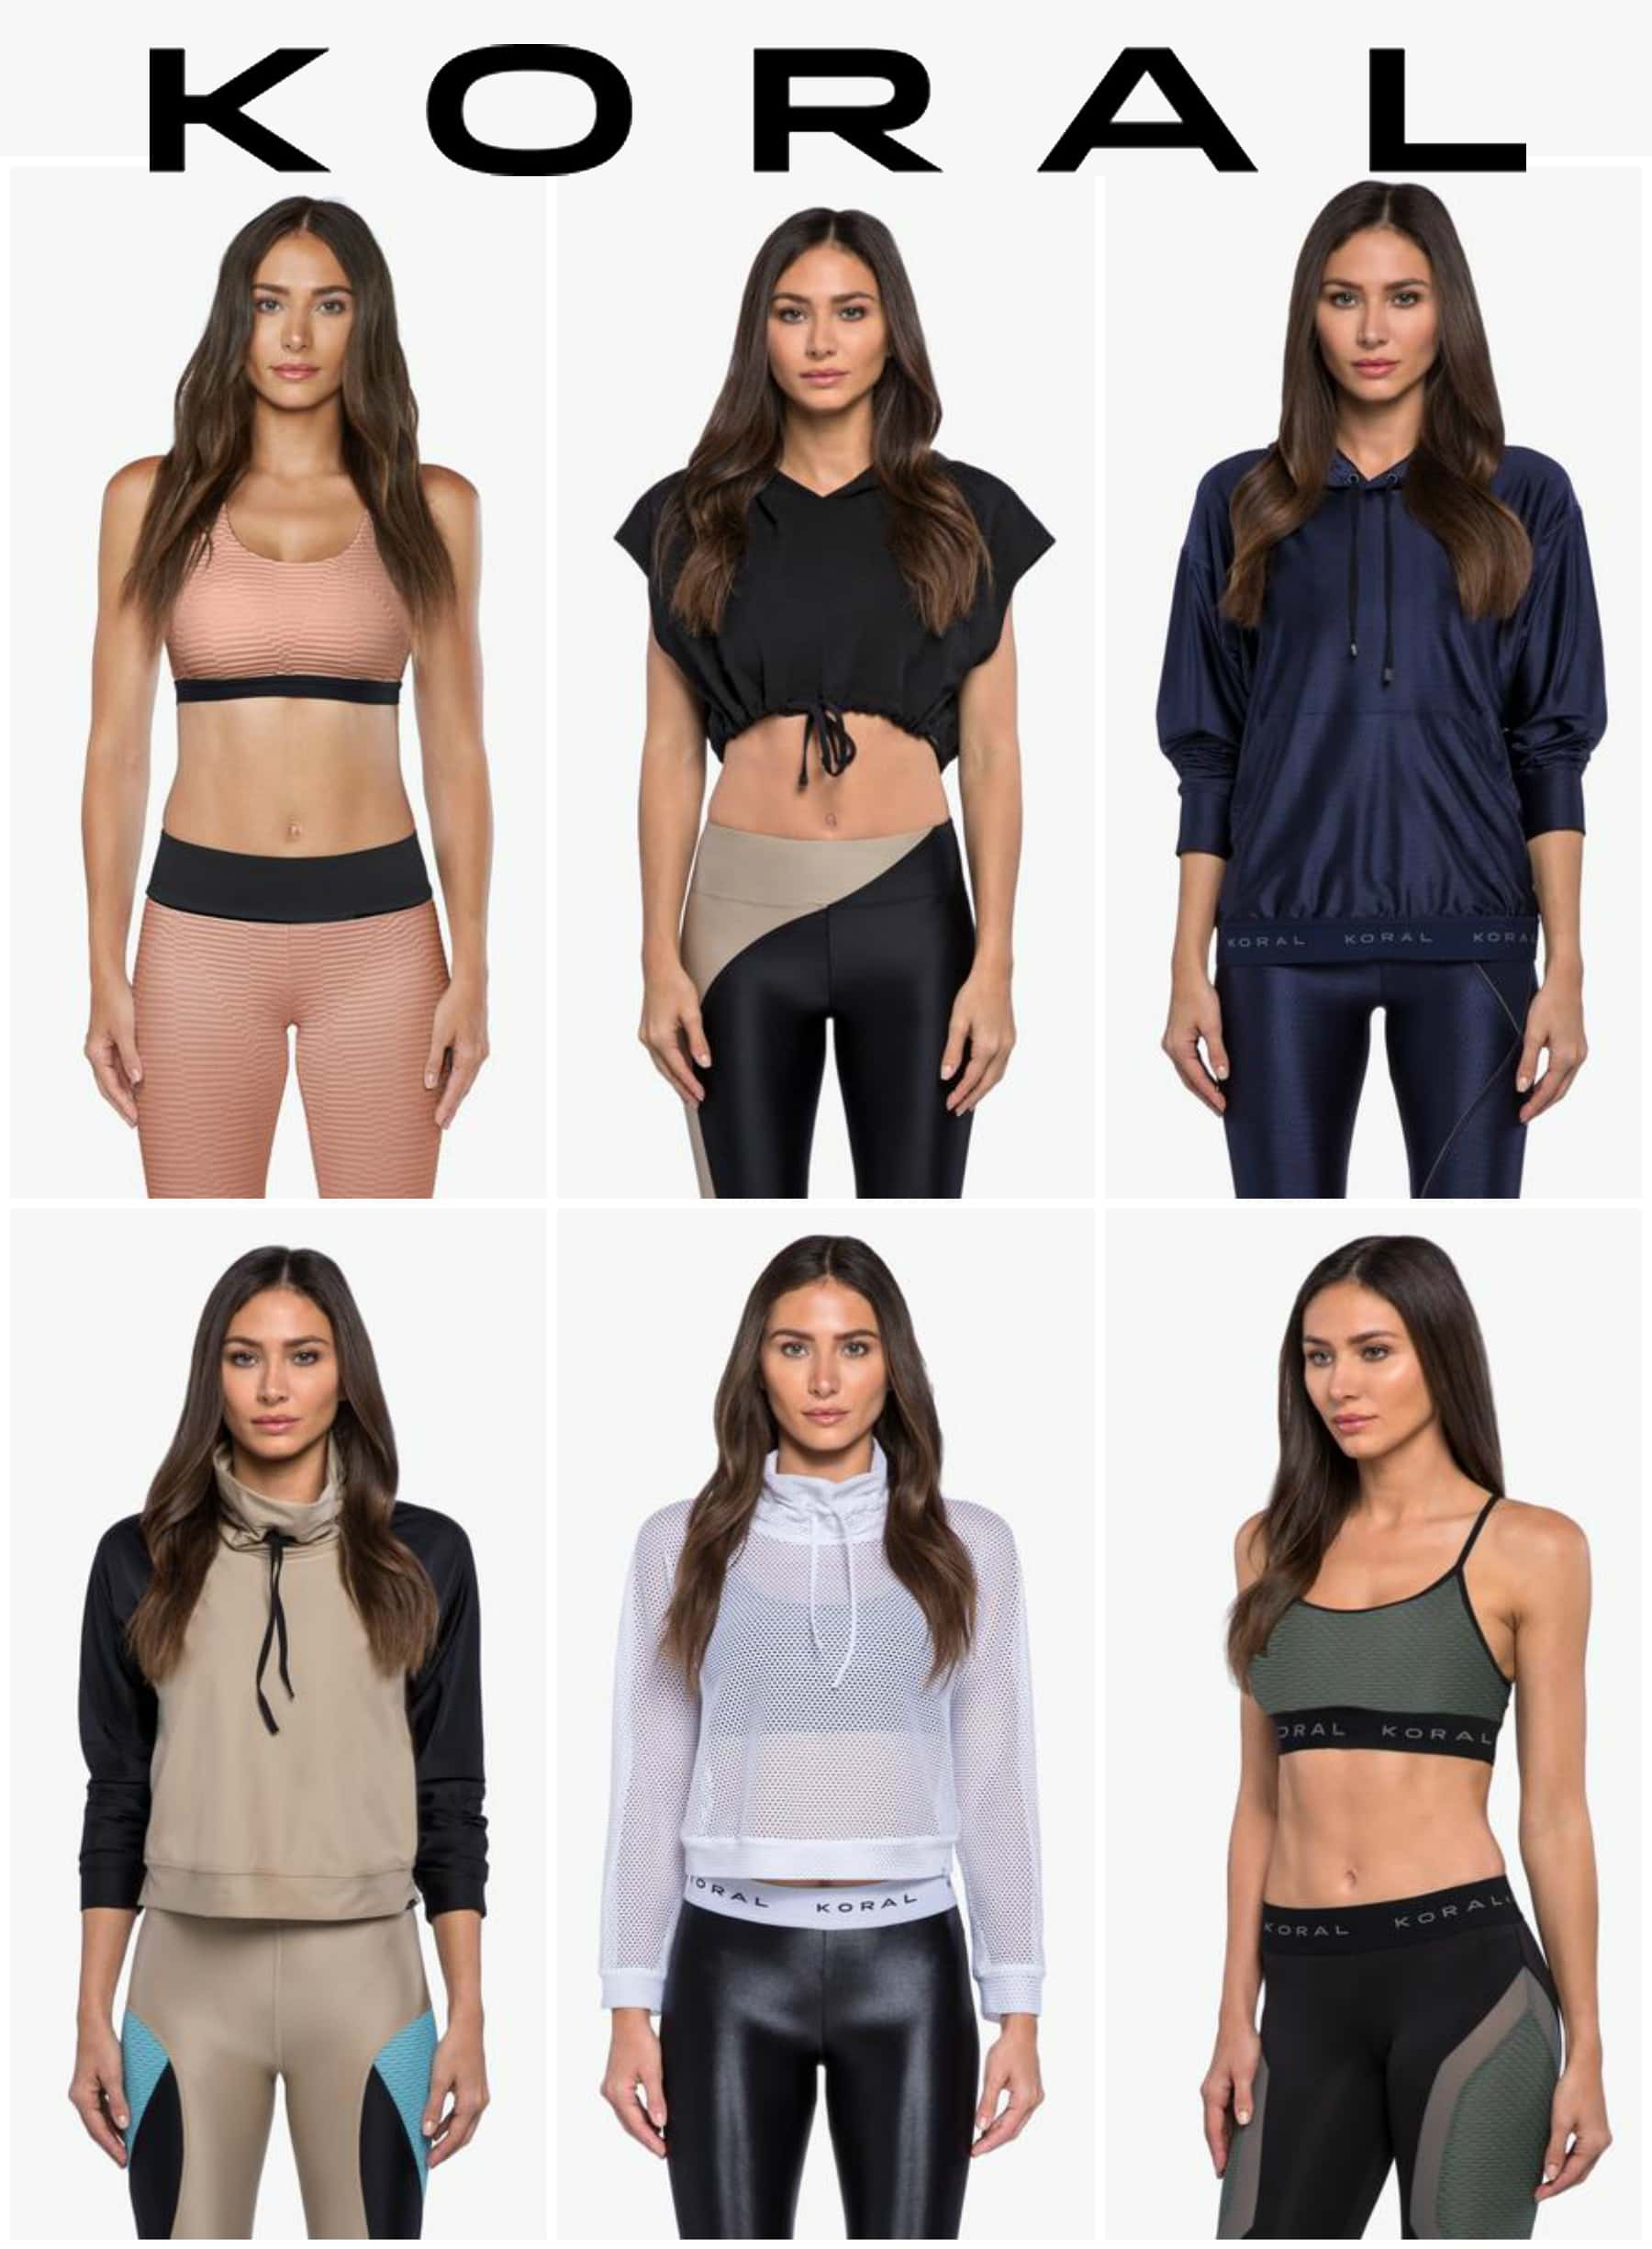 Koral Activewear Fall Styles